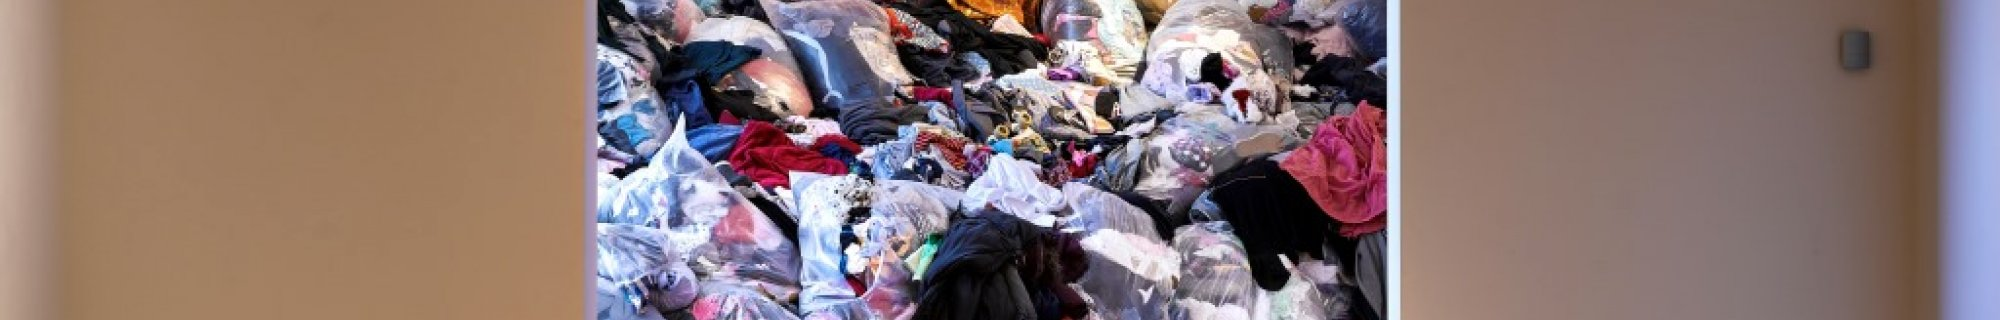 intsallation  by Catherine Delaney consisiting of a huge mound of second hand clothes in gallery 2, dlr LexIcon